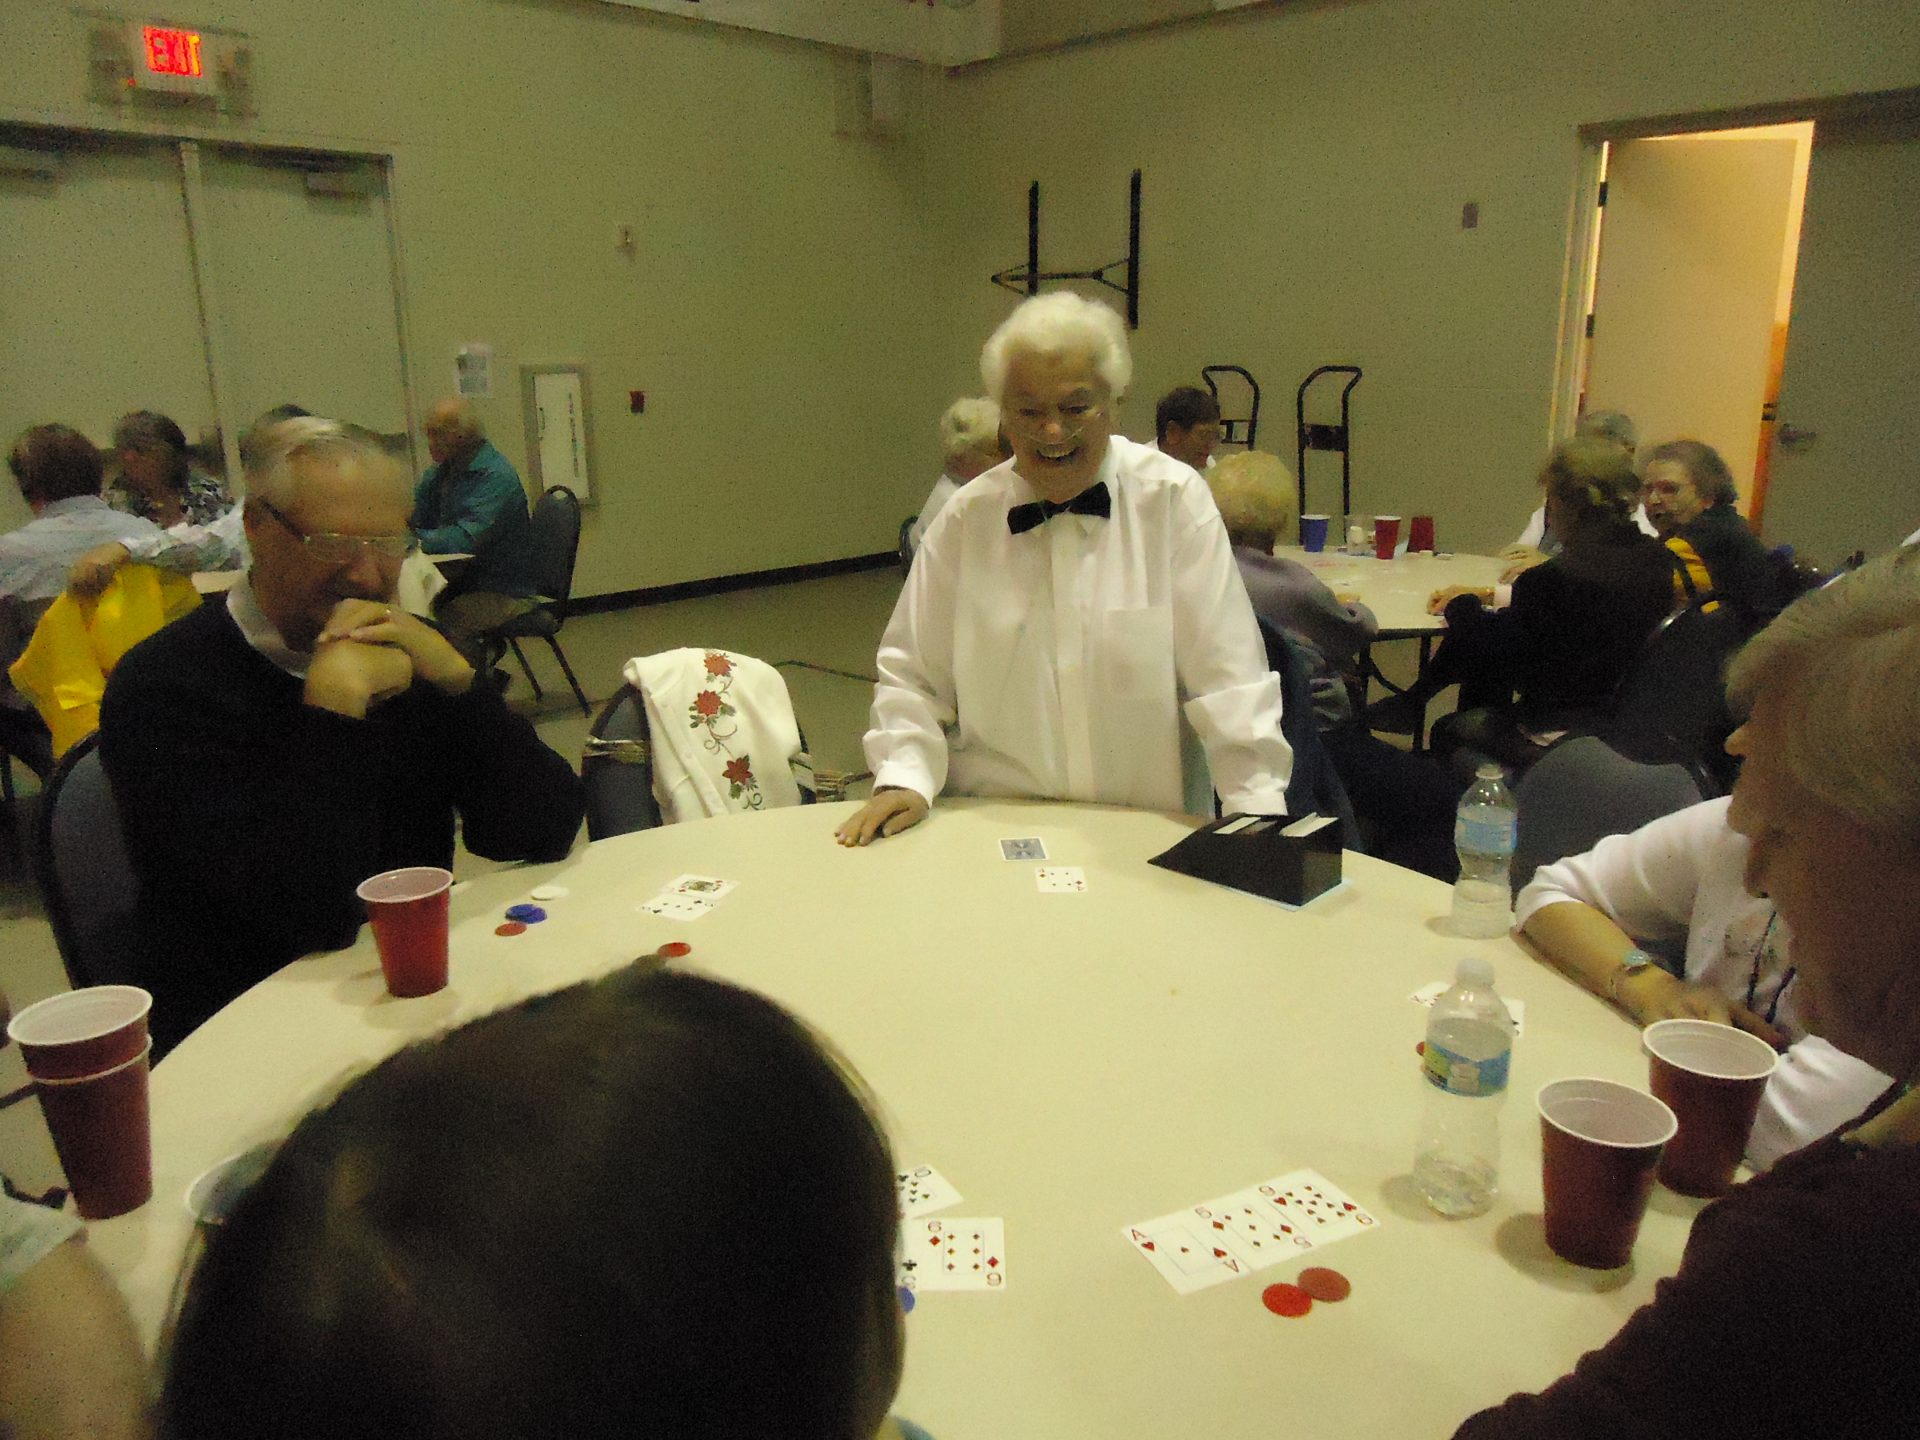 Beloved Ann as one of our poker dealers at the St. Vincent de Paul Las Vegas Night 2/2016